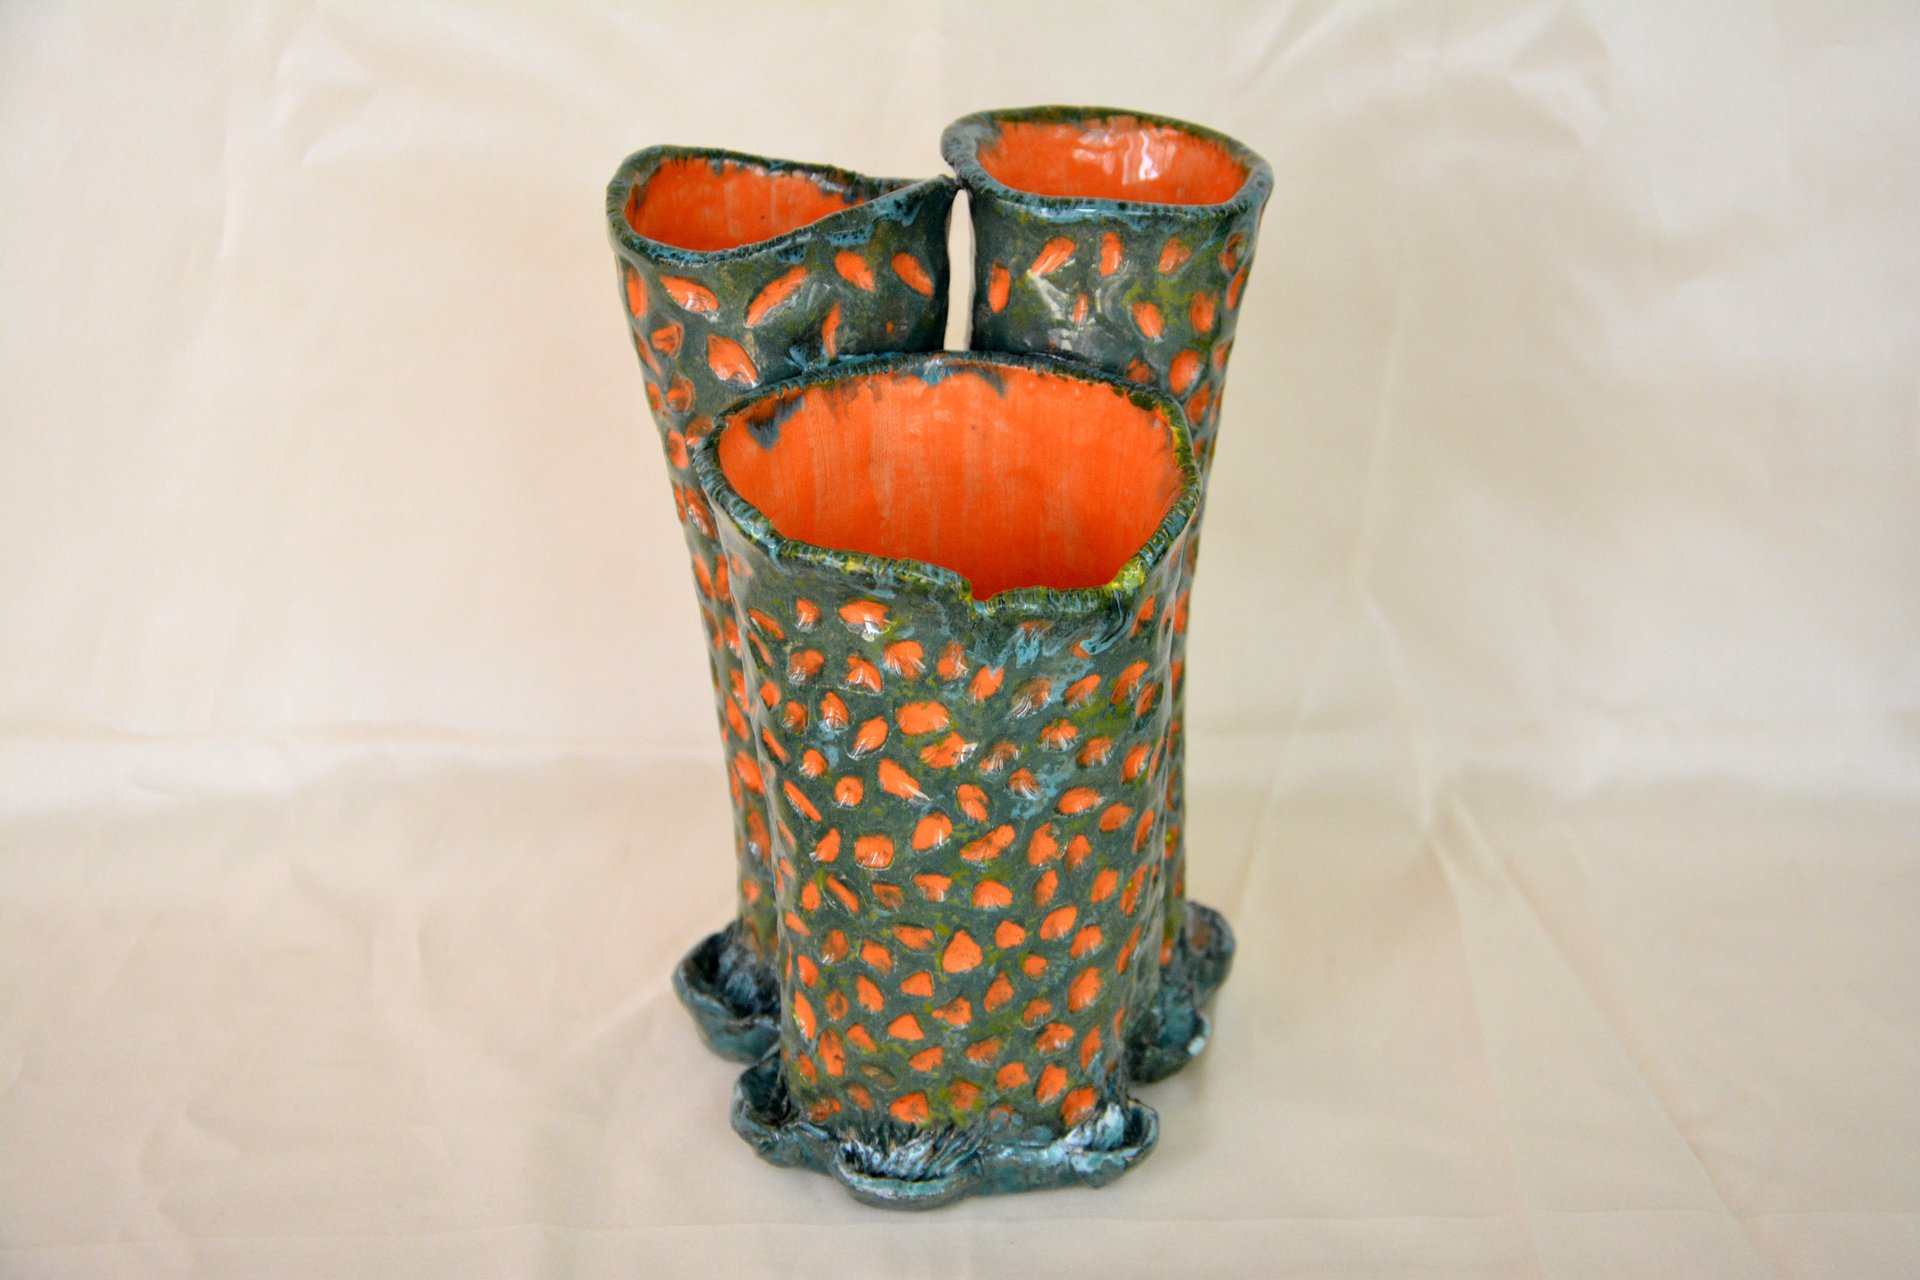 Decorative Vase Coral Reef, height - 20 cm, photo 3 of 3. 1177.